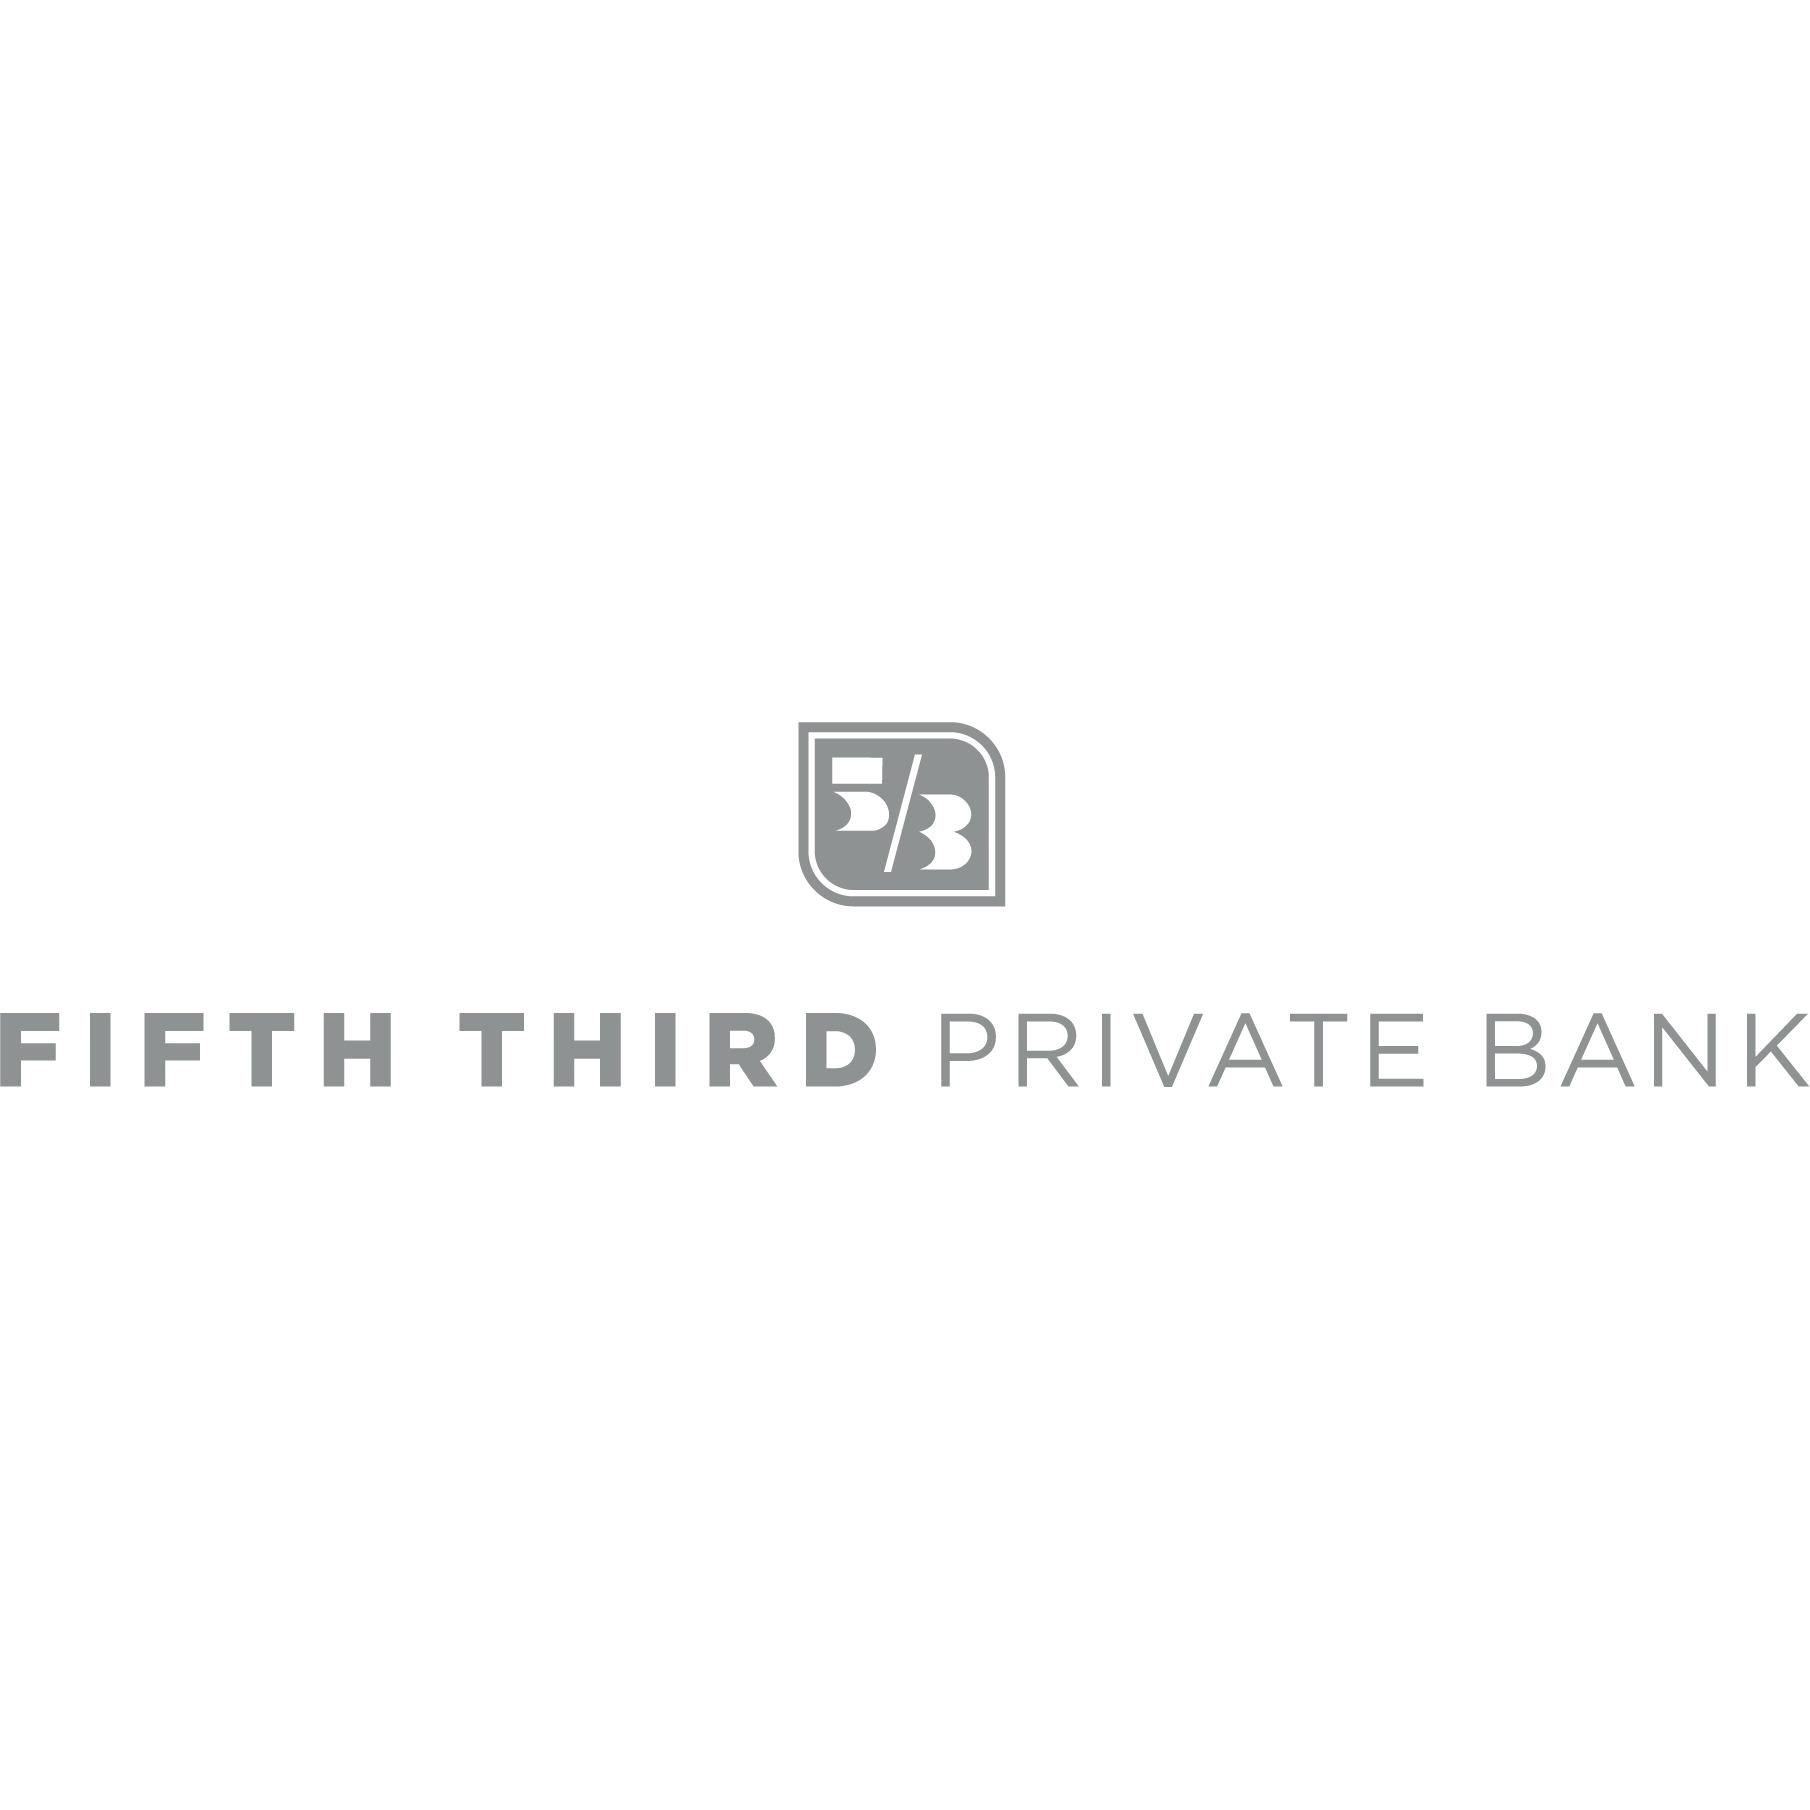 Fifth Third Private Banker - Jonathan Soto